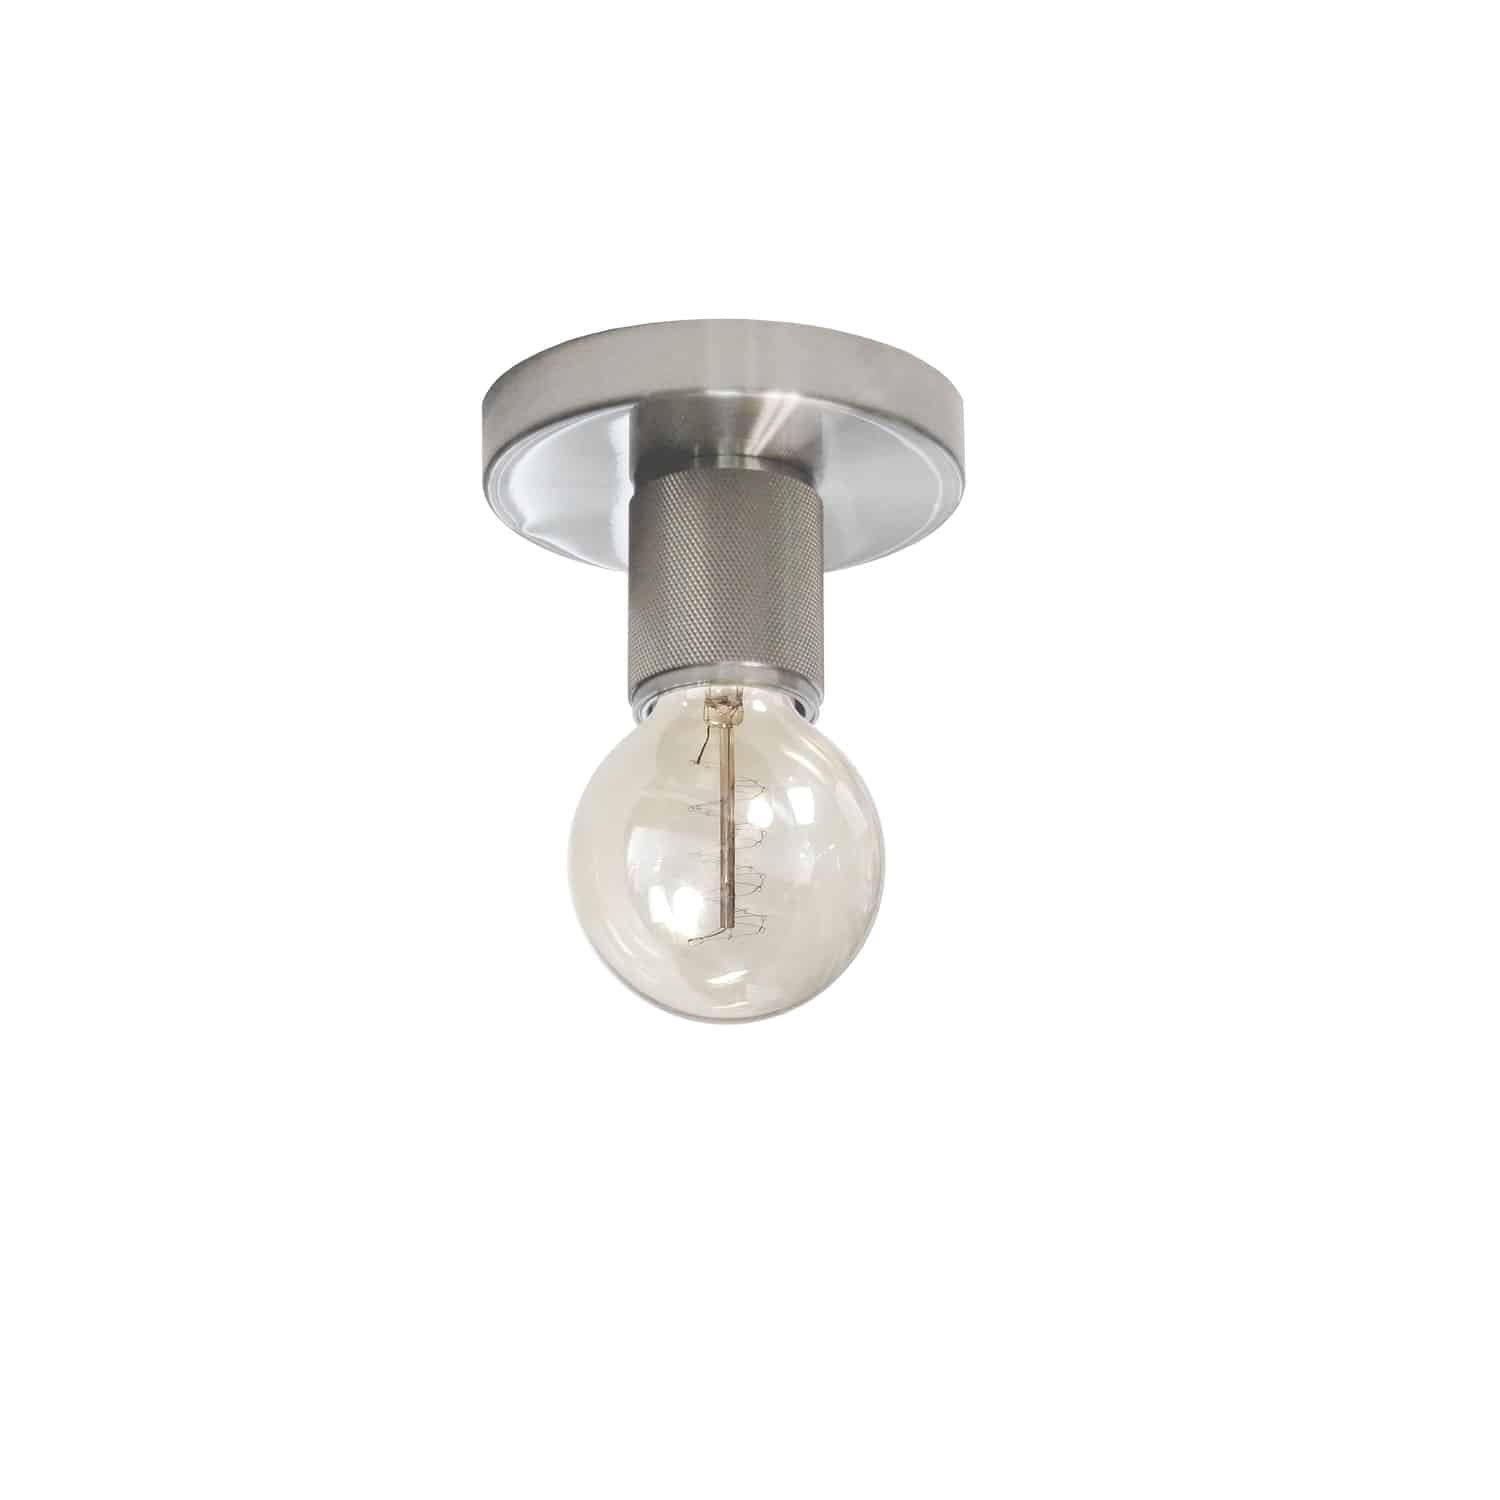 1 Light Incandescent Flush Mount, Satin Chrome